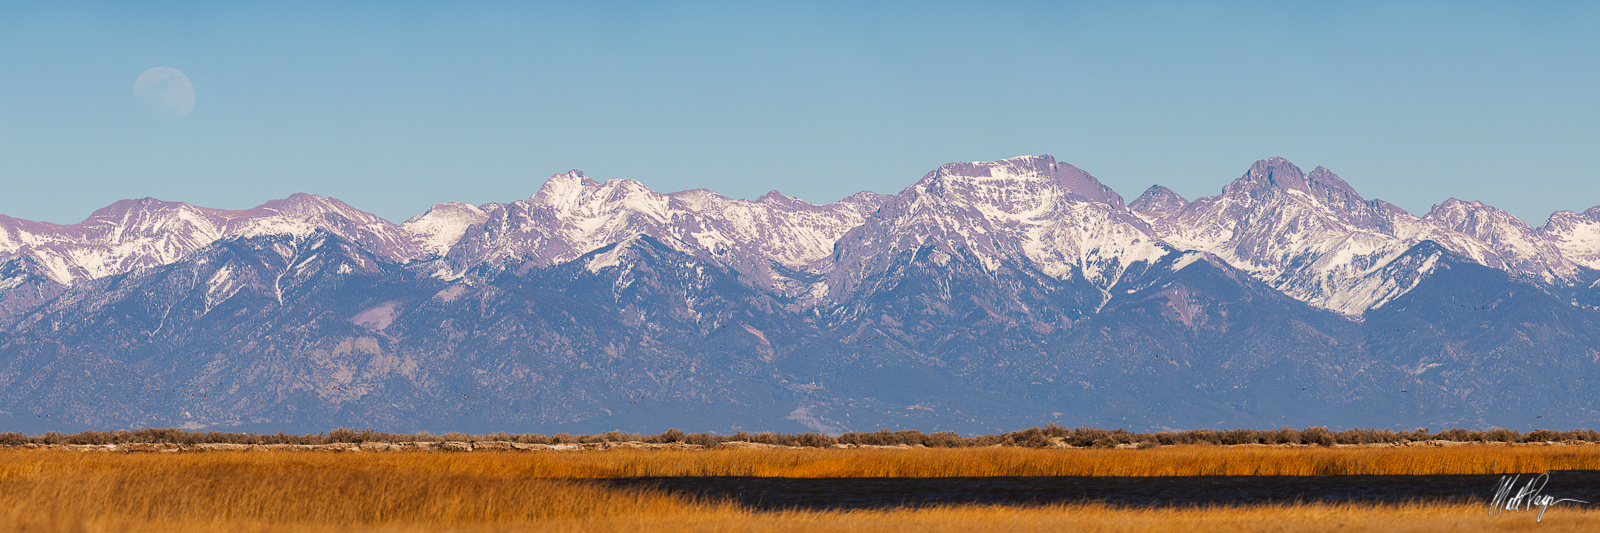 13er, 14er, Colorado, Crestone Needle, Crestone Peak, Gibbous, Kit Carson Mountain, Moon, Moonrise, Mount Adams, Panorama, San Luis Valley, Sangre de Cristo Mountains, Landscape Photography, Fourteene, photo